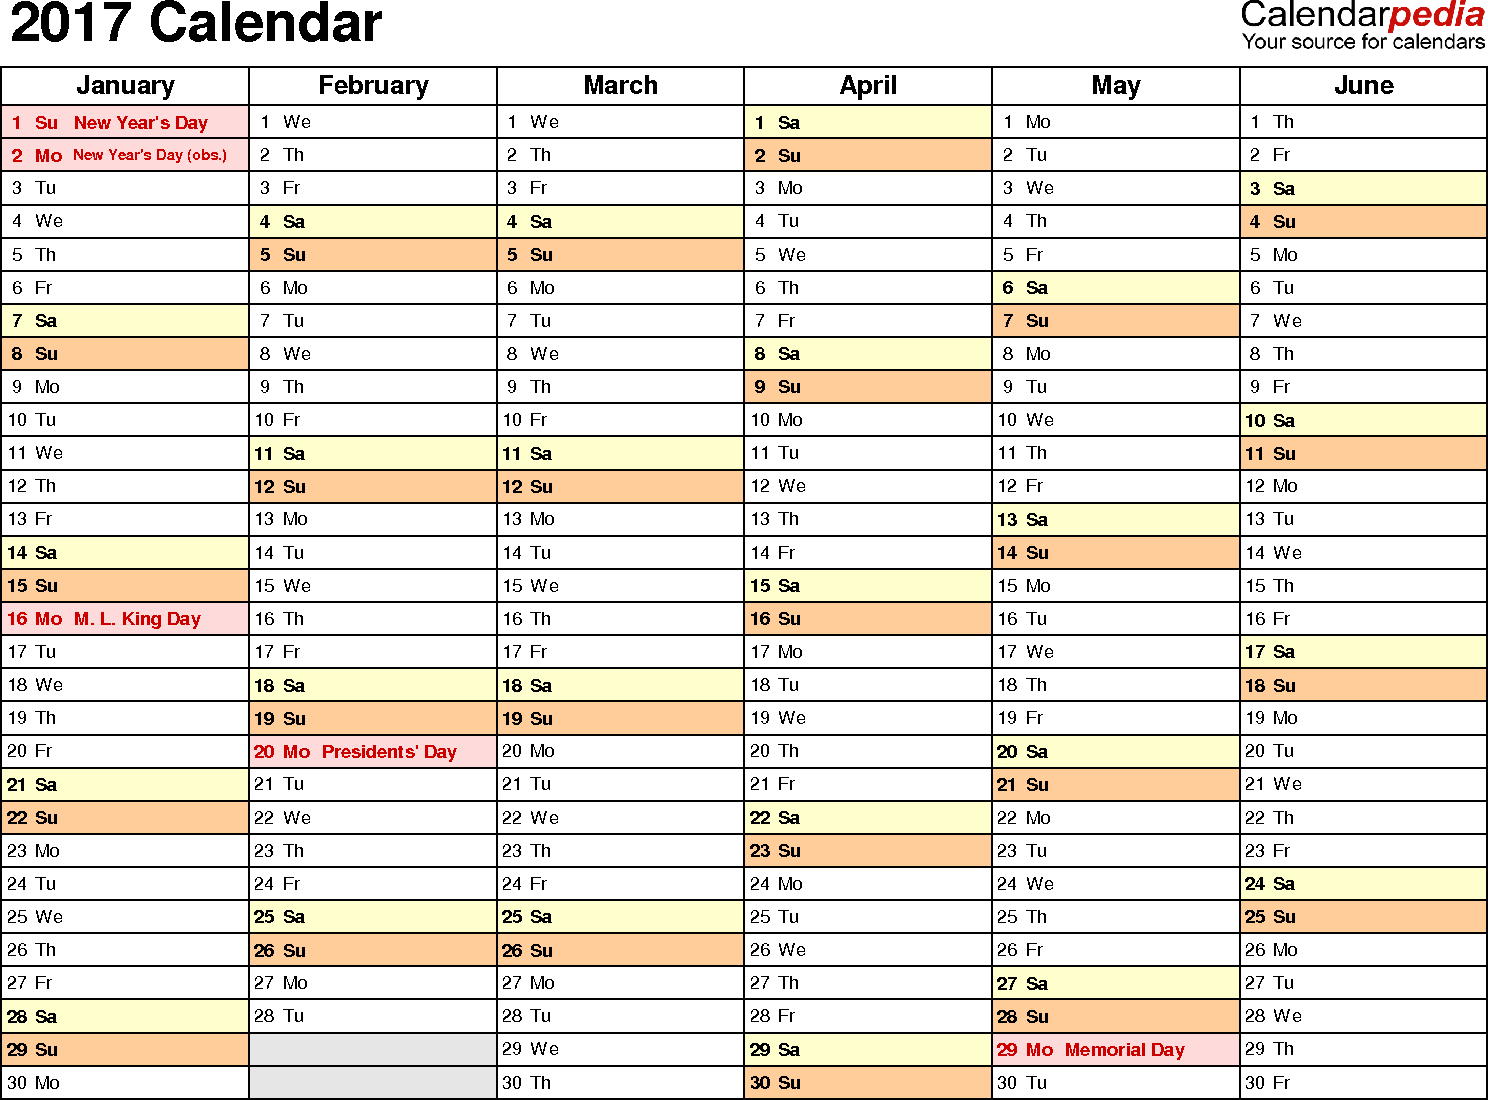 Ediblewildsus  Winning  Calendar  Download  Free Printable Excel Templates Xls With Heavenly Template   Calendar For Excel Months Horizontally  Pages Landscape Orientation With Divine Creating Dropdown In Excel Also Multiple Goal Seek Excel In Addition Excel  Advanced Tutorial Pdf And How To Do A Vlookup On Excel As Well As Excel Pos Software Additionally Excel Security Corp From Calendarpediacom With Ediblewildsus  Heavenly  Calendar  Download  Free Printable Excel Templates Xls With Divine Template   Calendar For Excel Months Horizontally  Pages Landscape Orientation And Winning Creating Dropdown In Excel Also Multiple Goal Seek Excel In Addition Excel  Advanced Tutorial Pdf From Calendarpediacom